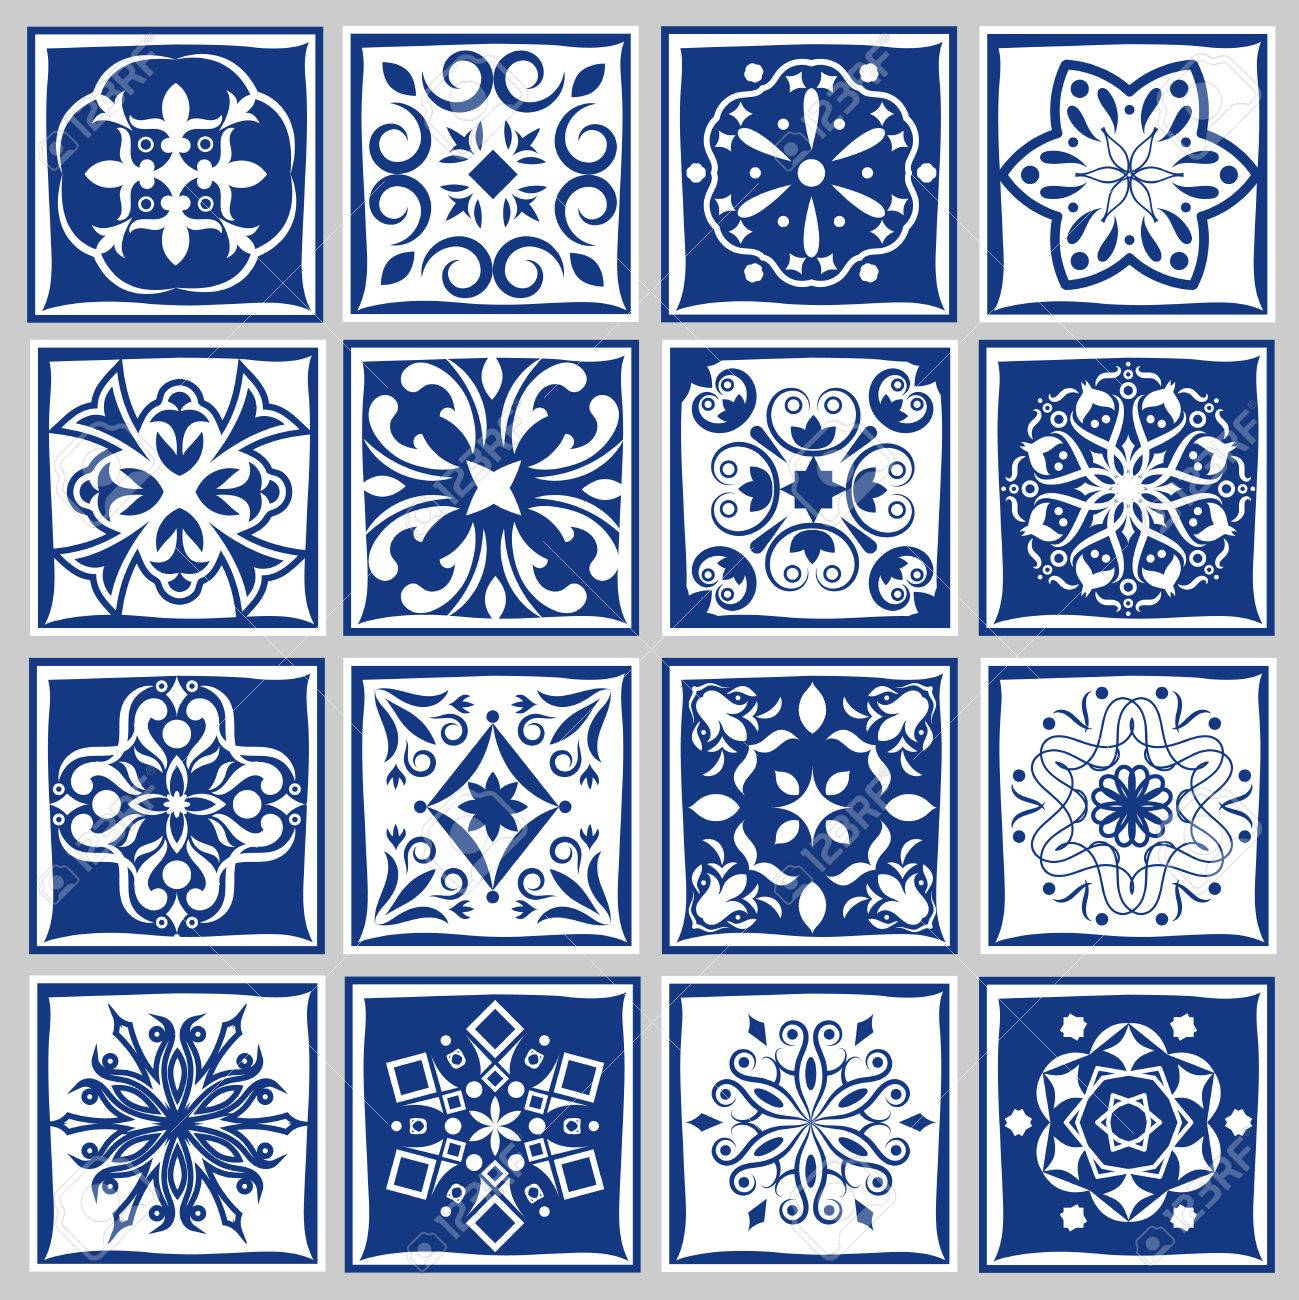 Tile Patterns With Flowers For Bath Or Kitchen. Floral Tiles ...